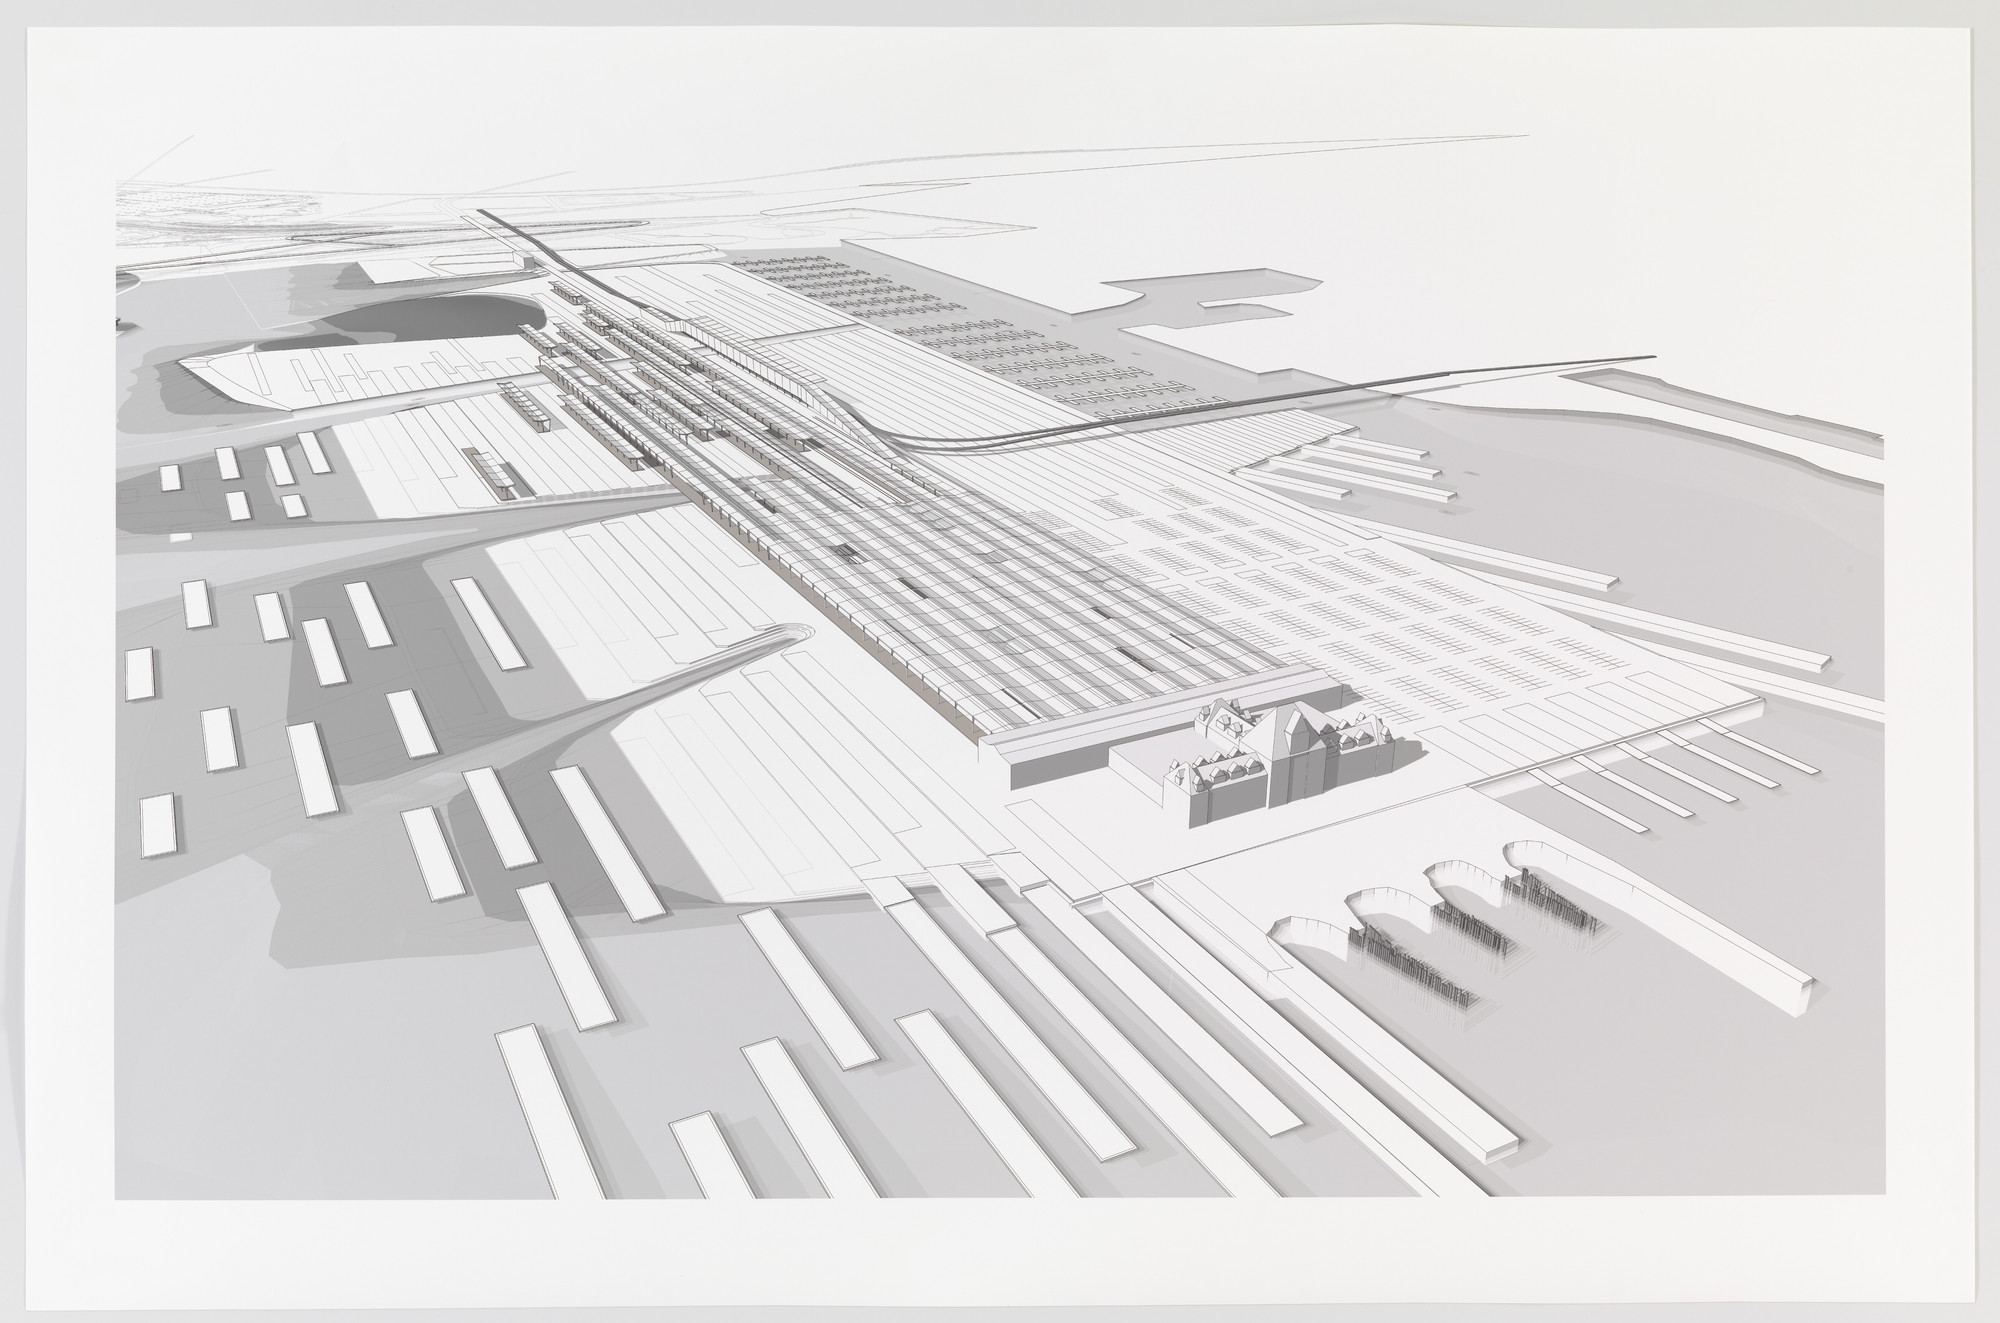 Paul Lewis, Marc Tsurumaki, David J. Lewis. Regional Produce Market, Water Proving Ground Project, Liberty State Park, NJ (Aerial perspective). 2010